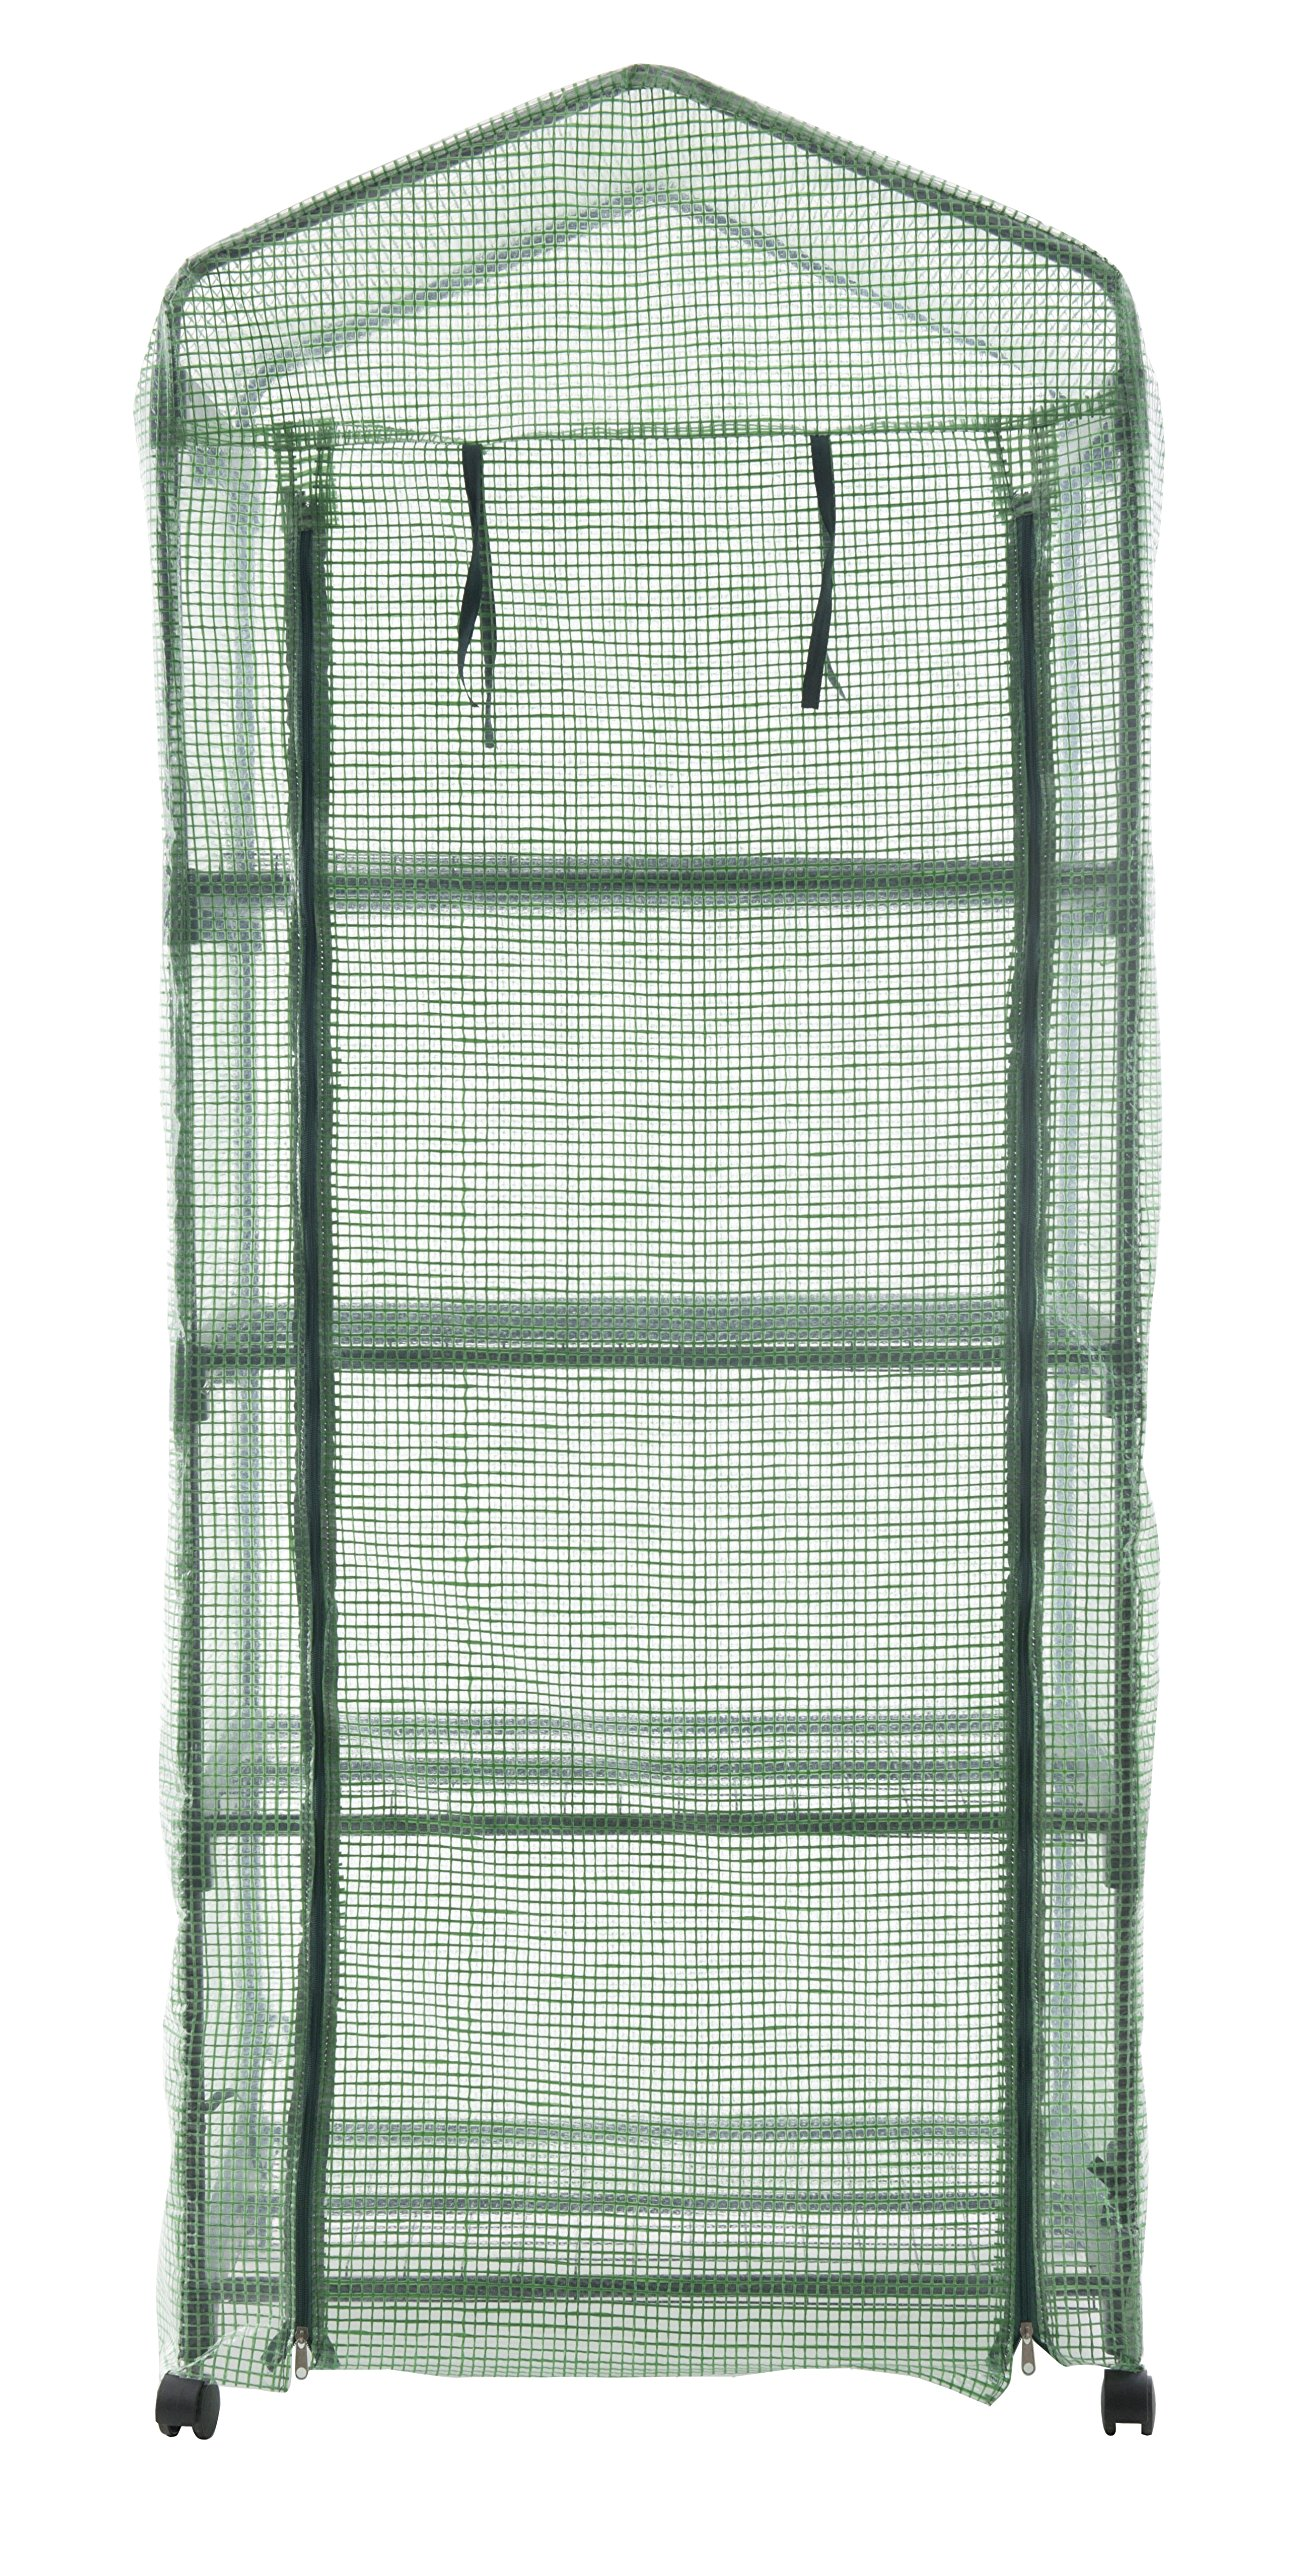 GOJOOASIS 4 Tier Mini Portable Garden Greenhouse on Wheels Plants Shed Hot House for Indoor and Outdoor